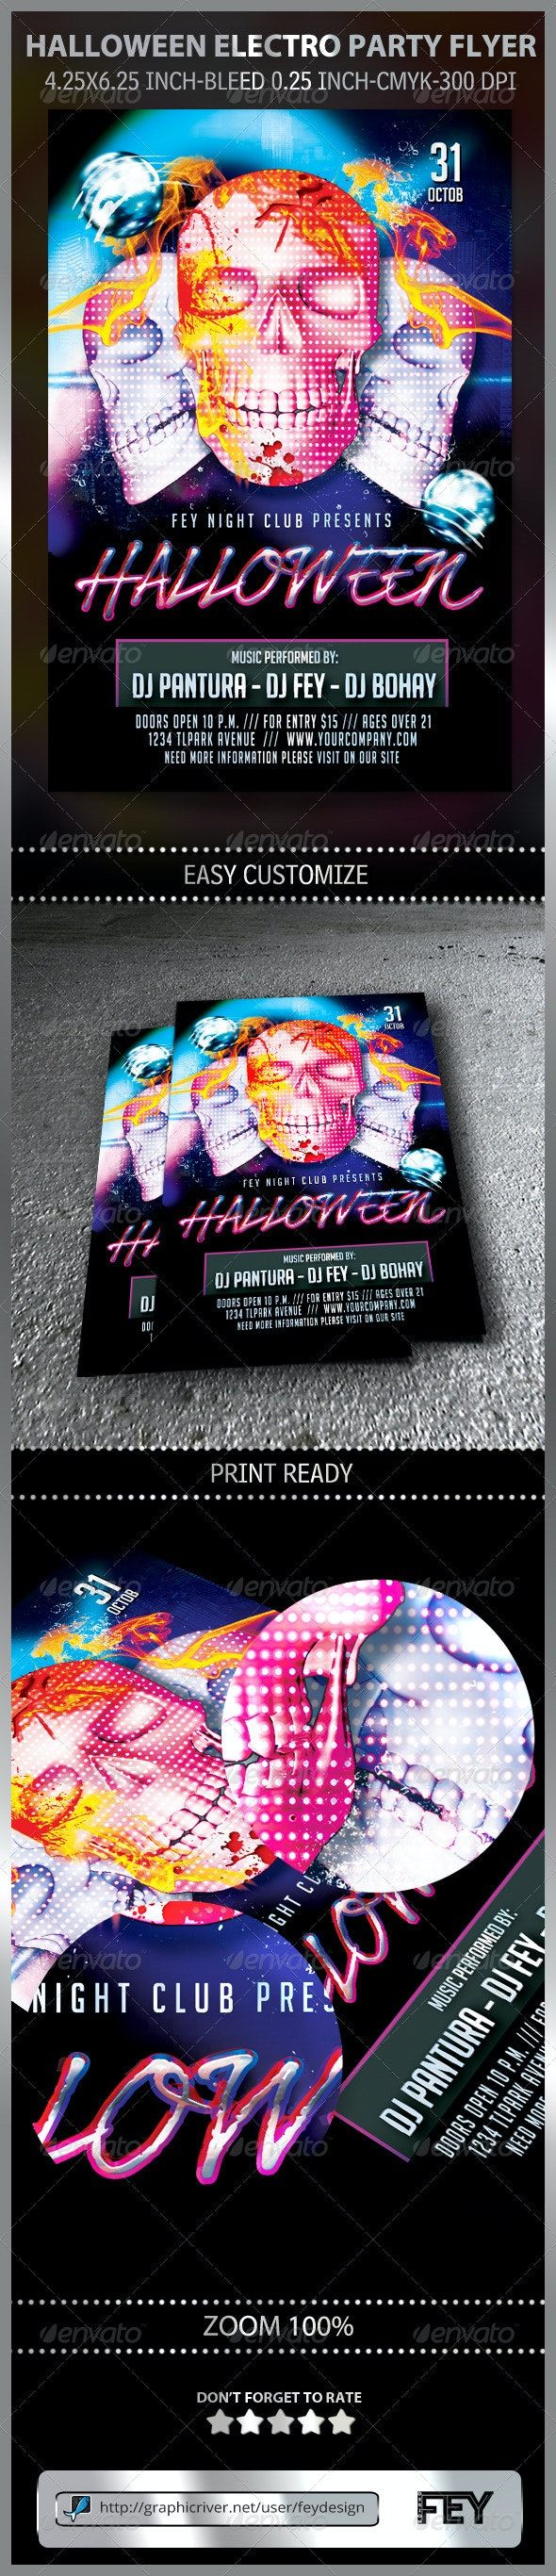 Halloween Electro Party Flyer - Clubs & Parties Events